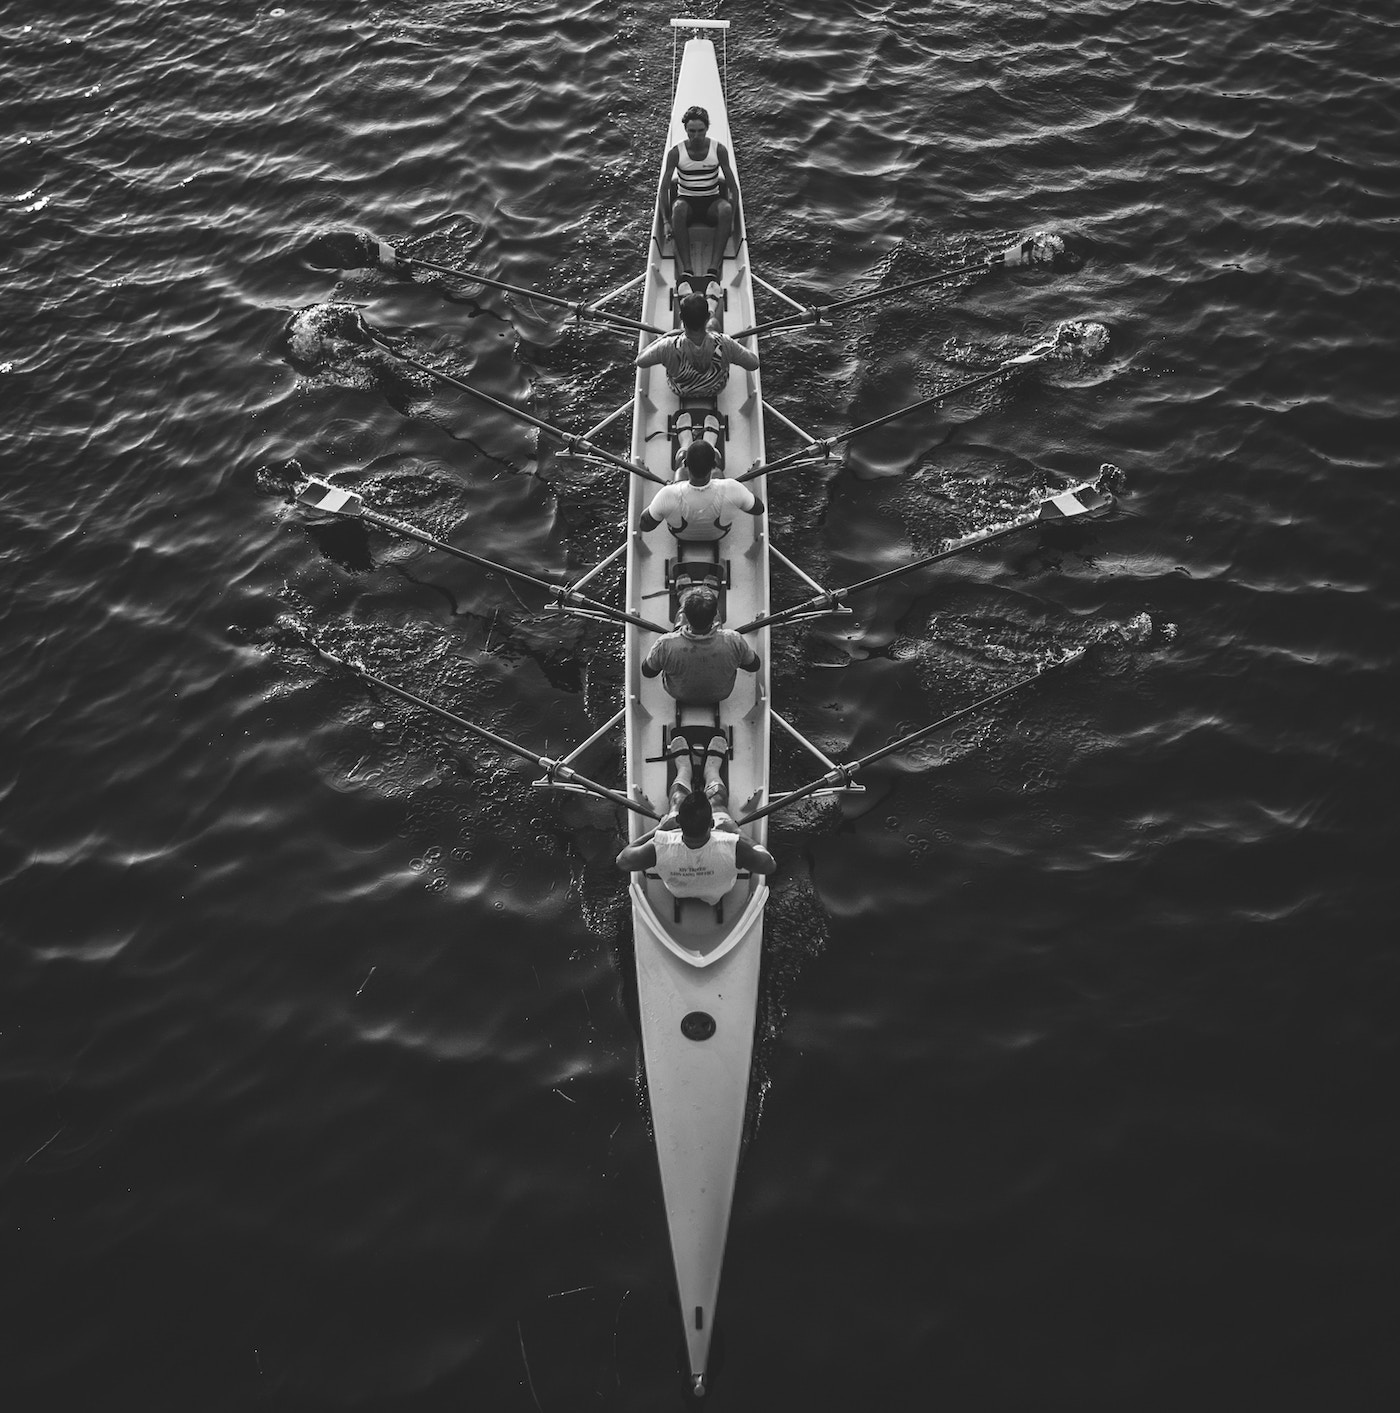 sales and marketing alignment are like rowers in a boat